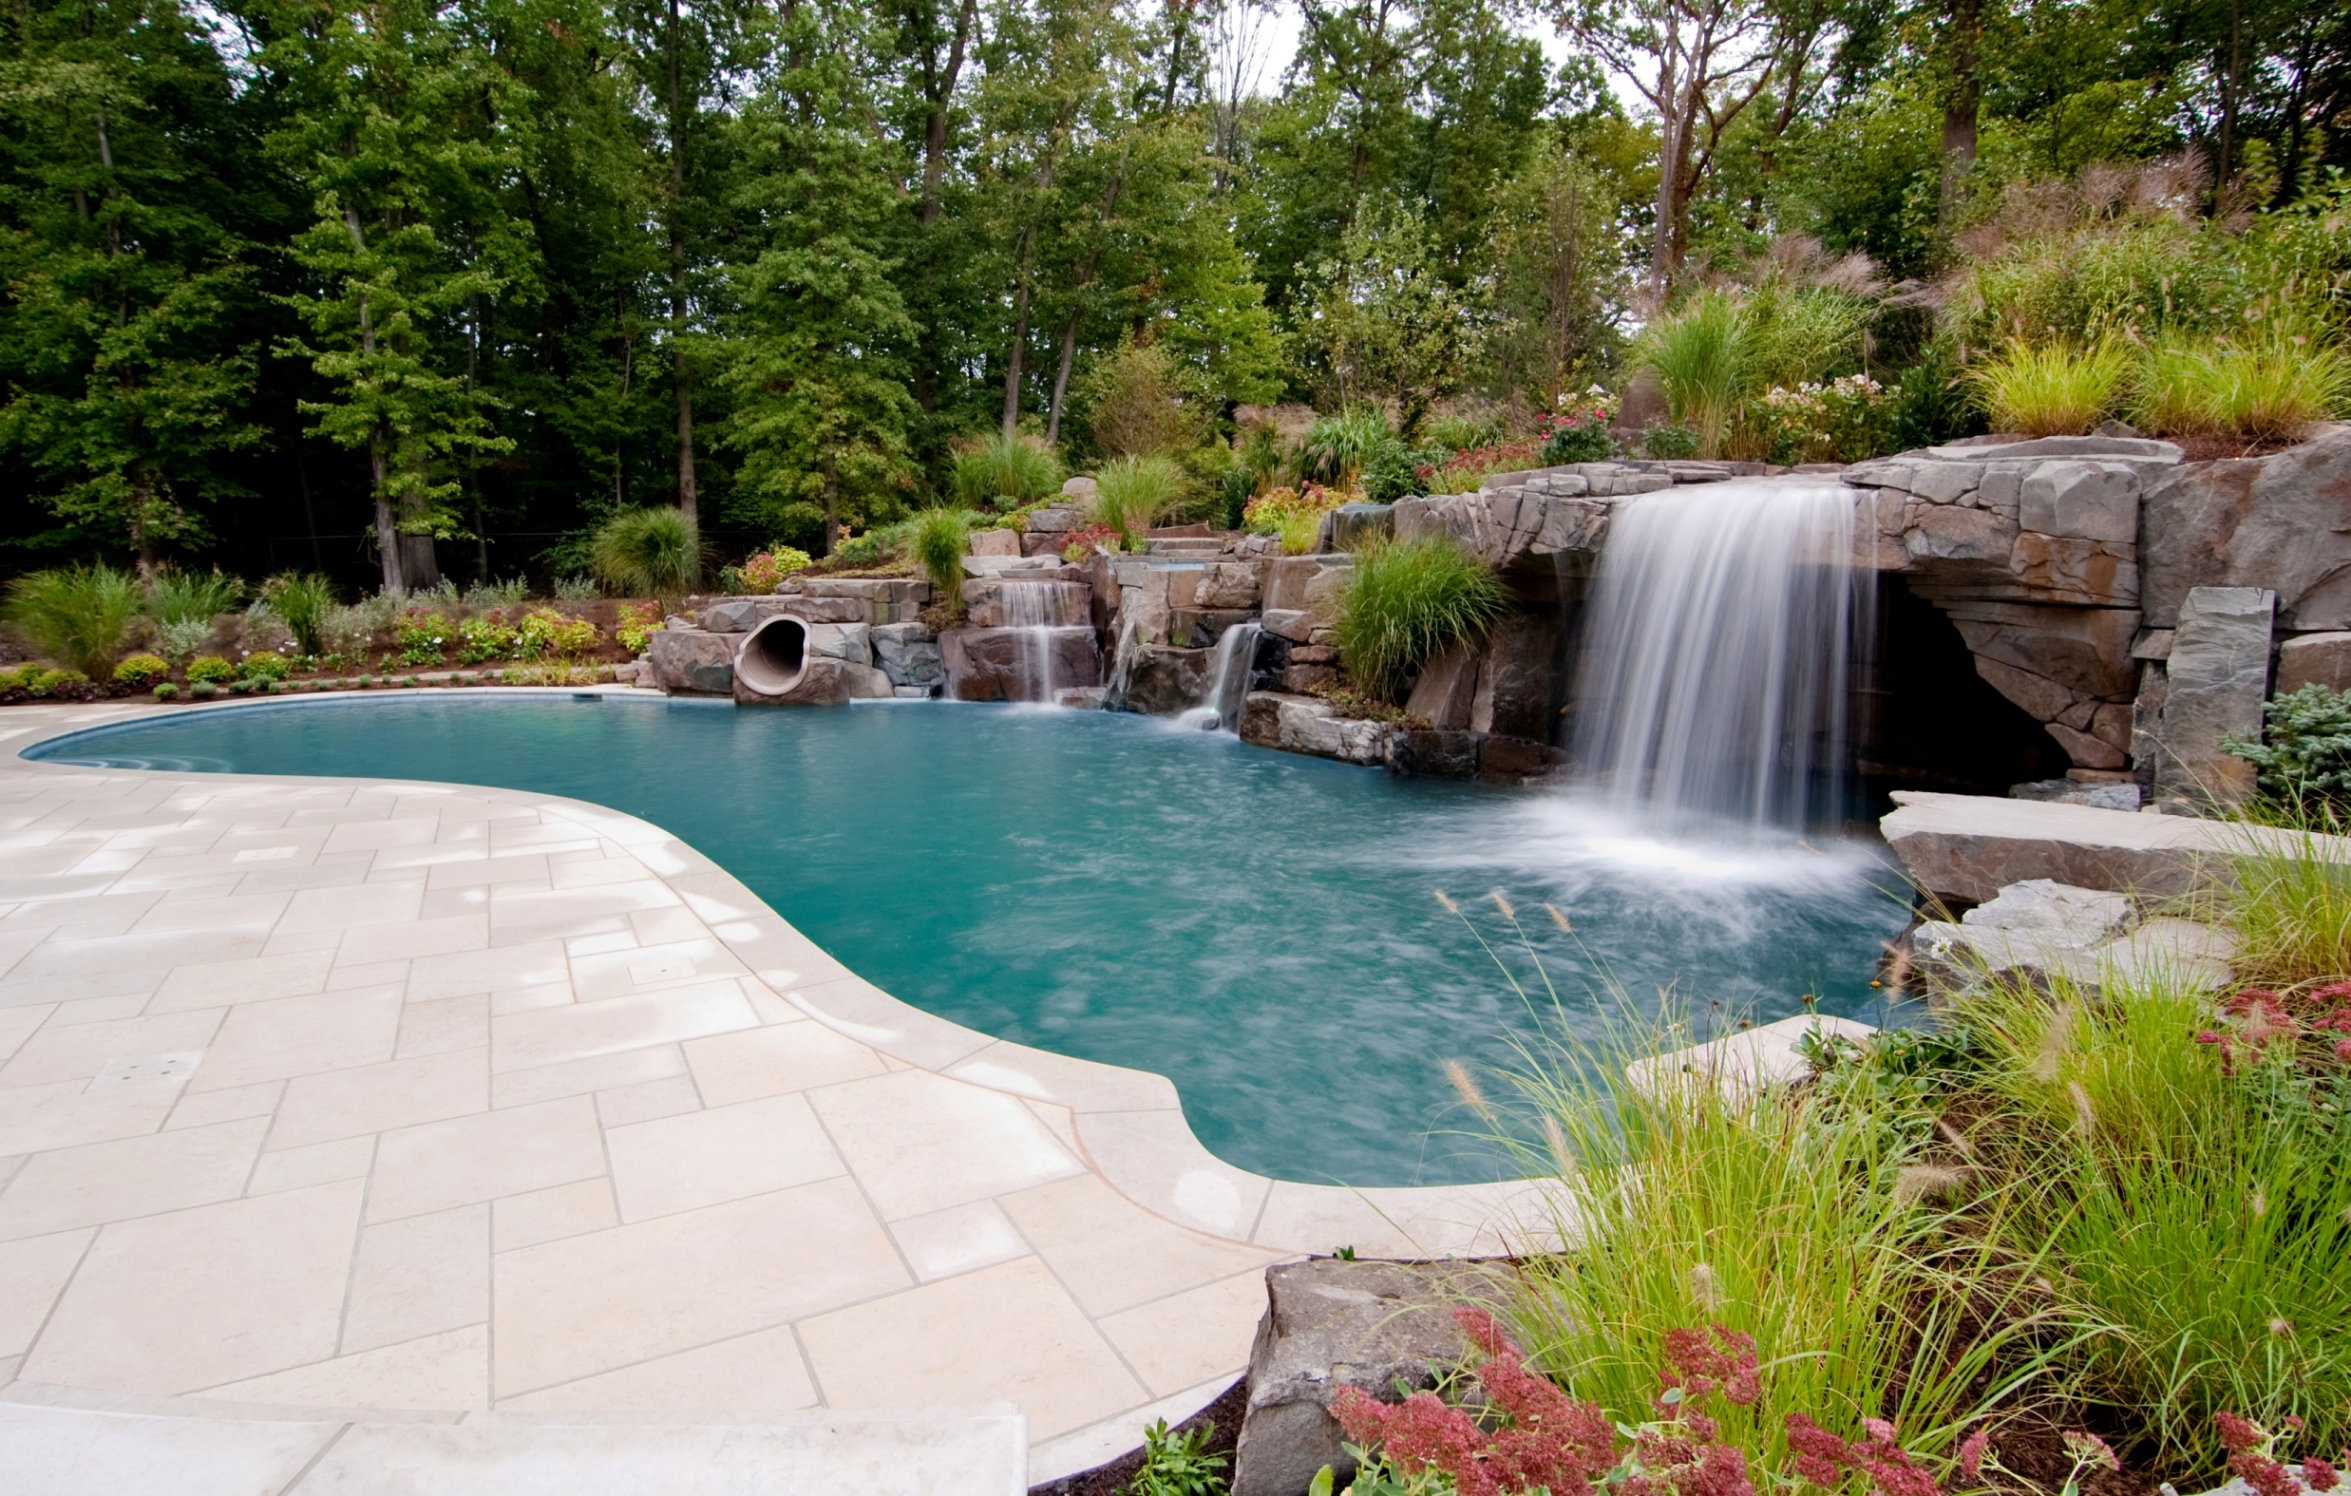 New jersey inground pool company earns international award for In ground pool backyard ideas